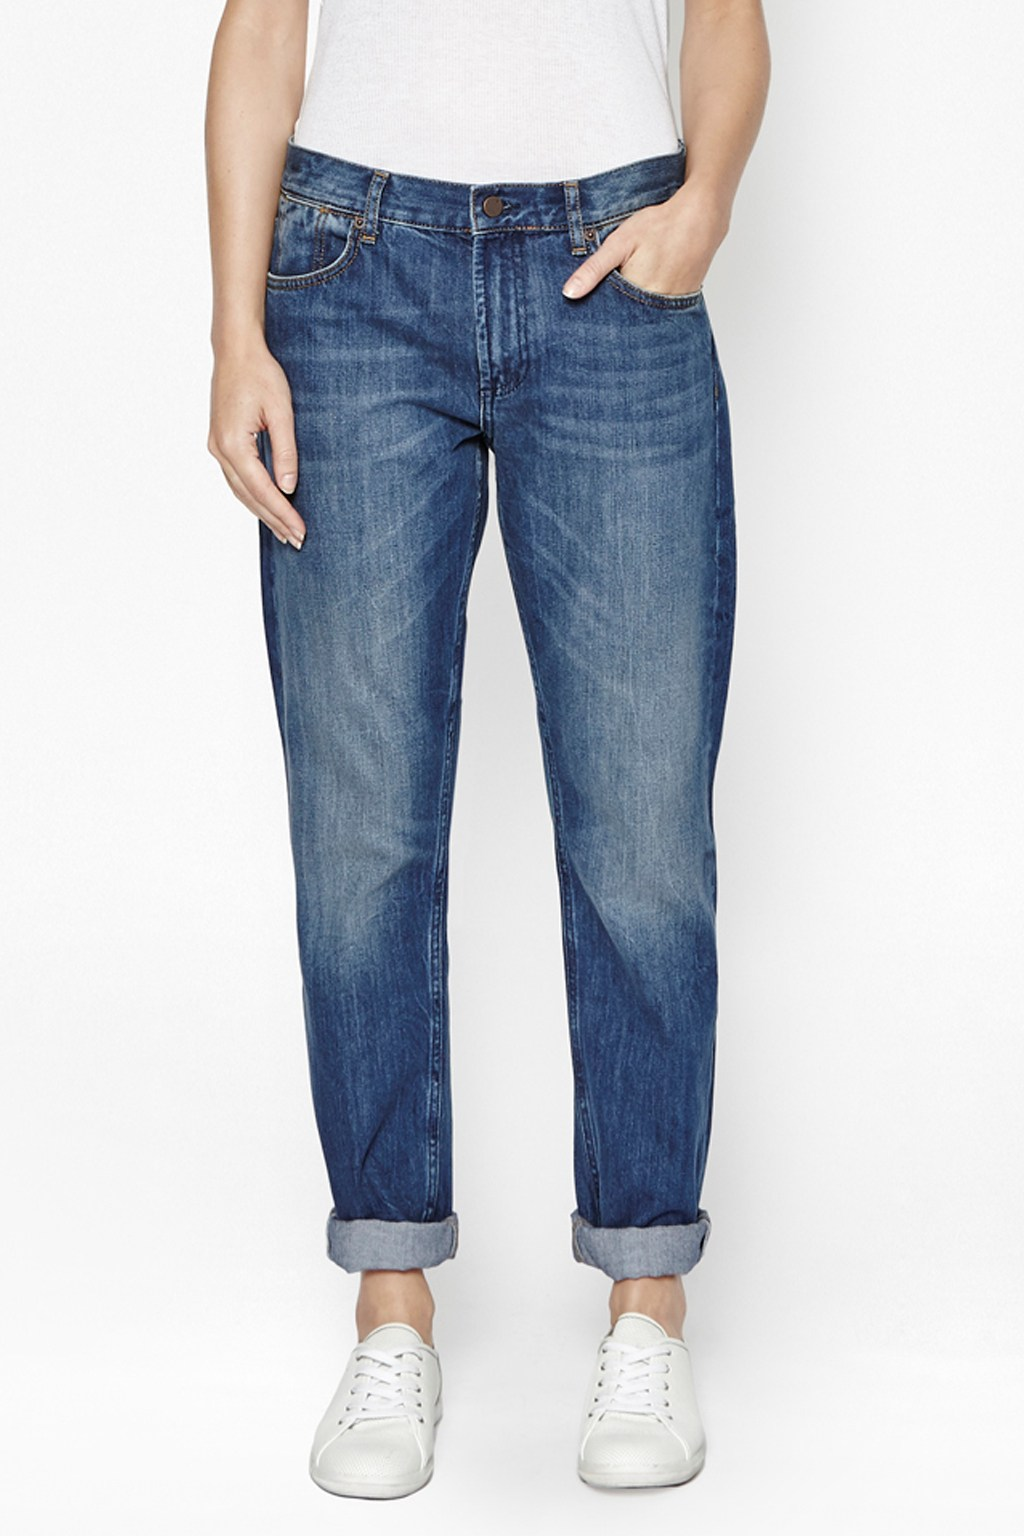 Women's Jeans, Plus Size Women's Jeans, Jeggings, Boyfriend Jeans, Skinny Jeans, Straight Jeans, Bootcut Jeans, Flare Jeans, maurices Jeans, Plus Size Silver Jeans Co., Vigoss Jeans Your store stylist is just a click away BOOK NOW >>.